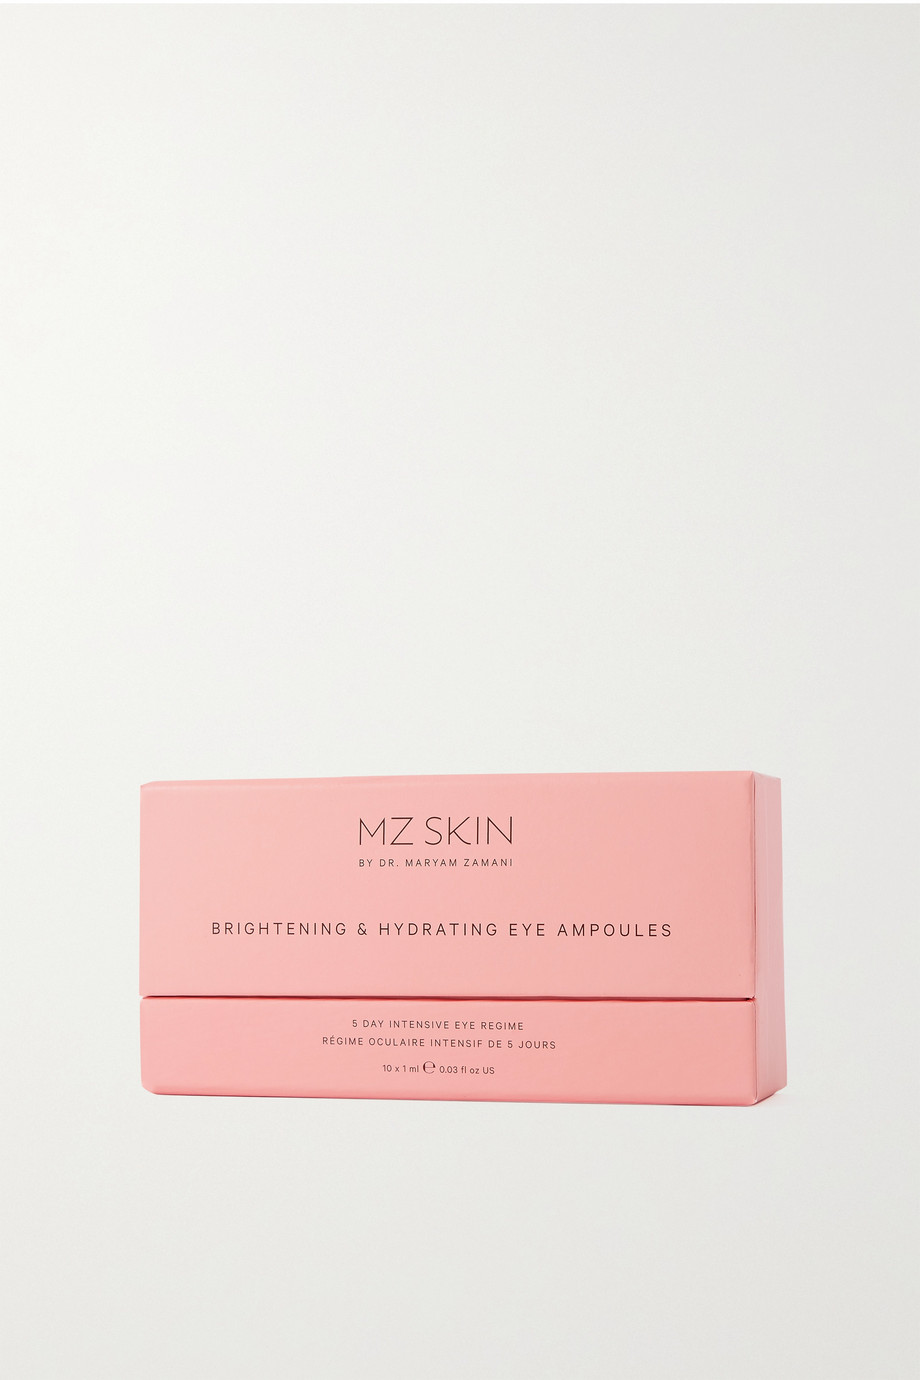 MZ Skin Brightening & Hydrating Eye Ampoules, 10 x 1ml